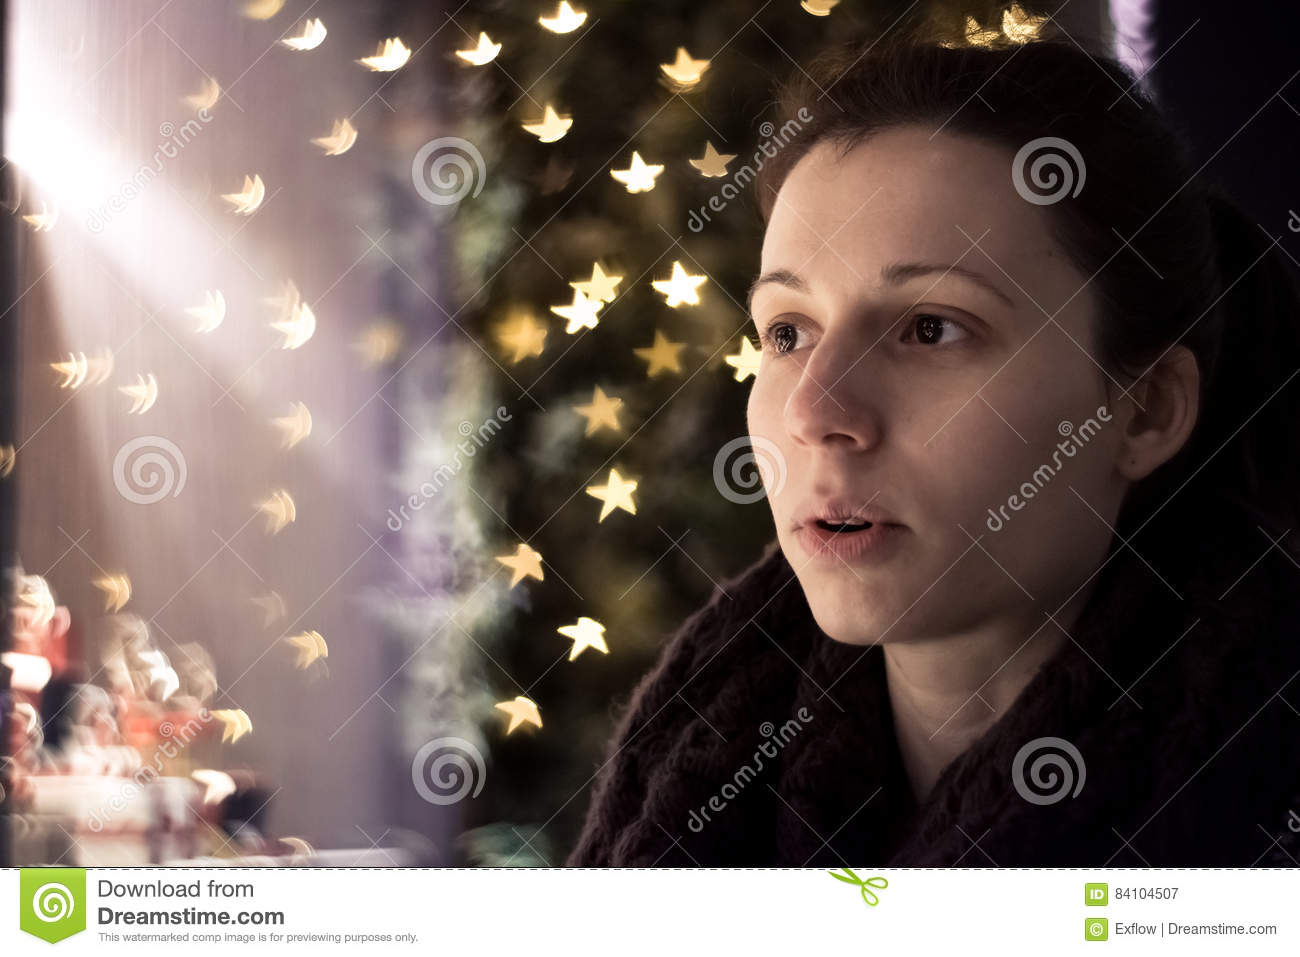 Wow! Girl amazed by Christmas decorations